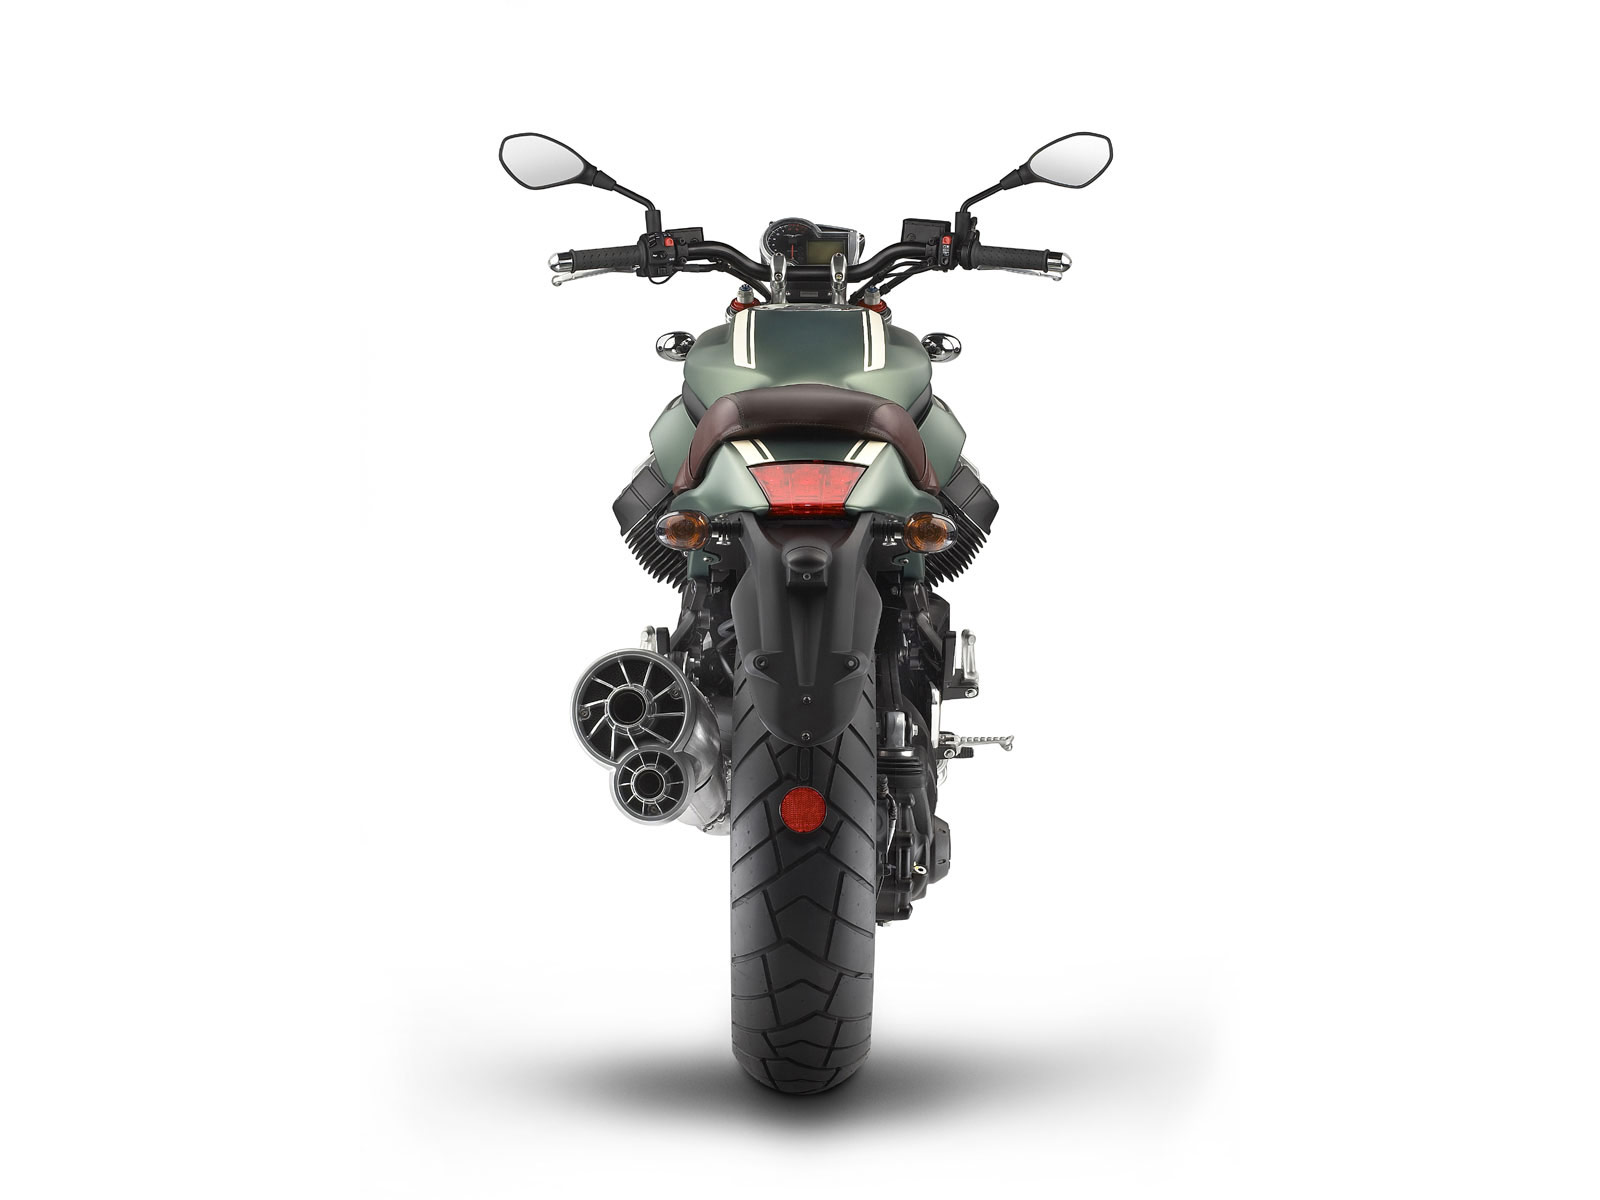 2009 MOTO GUZZI Griso 8V Special Edition | Accident lawyers | Motorcycle Motors